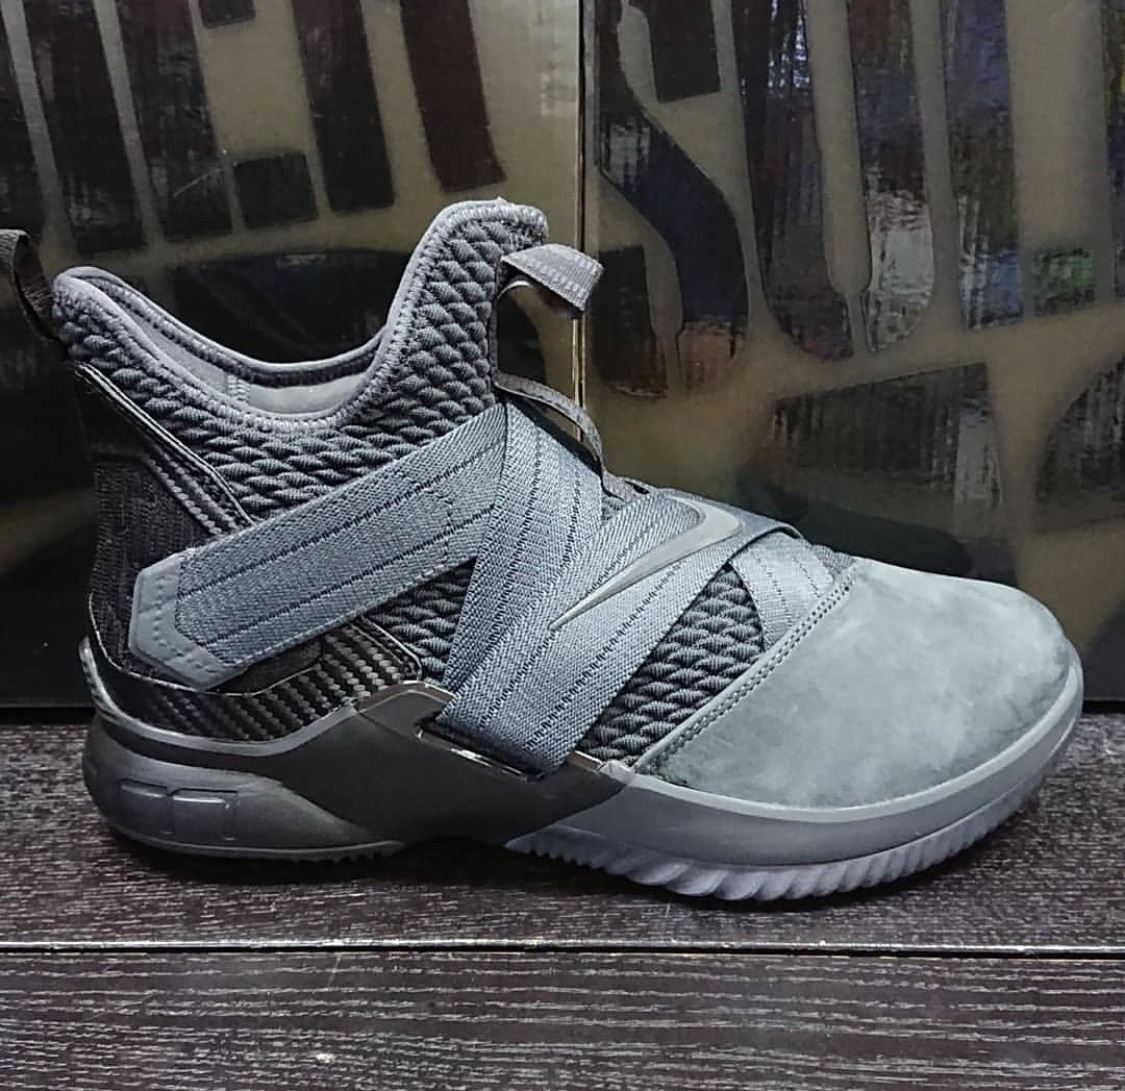 buy online 9736a db5ea Nike LeBron Soldier 12 SFG Surfaces in Grey - WearTesters